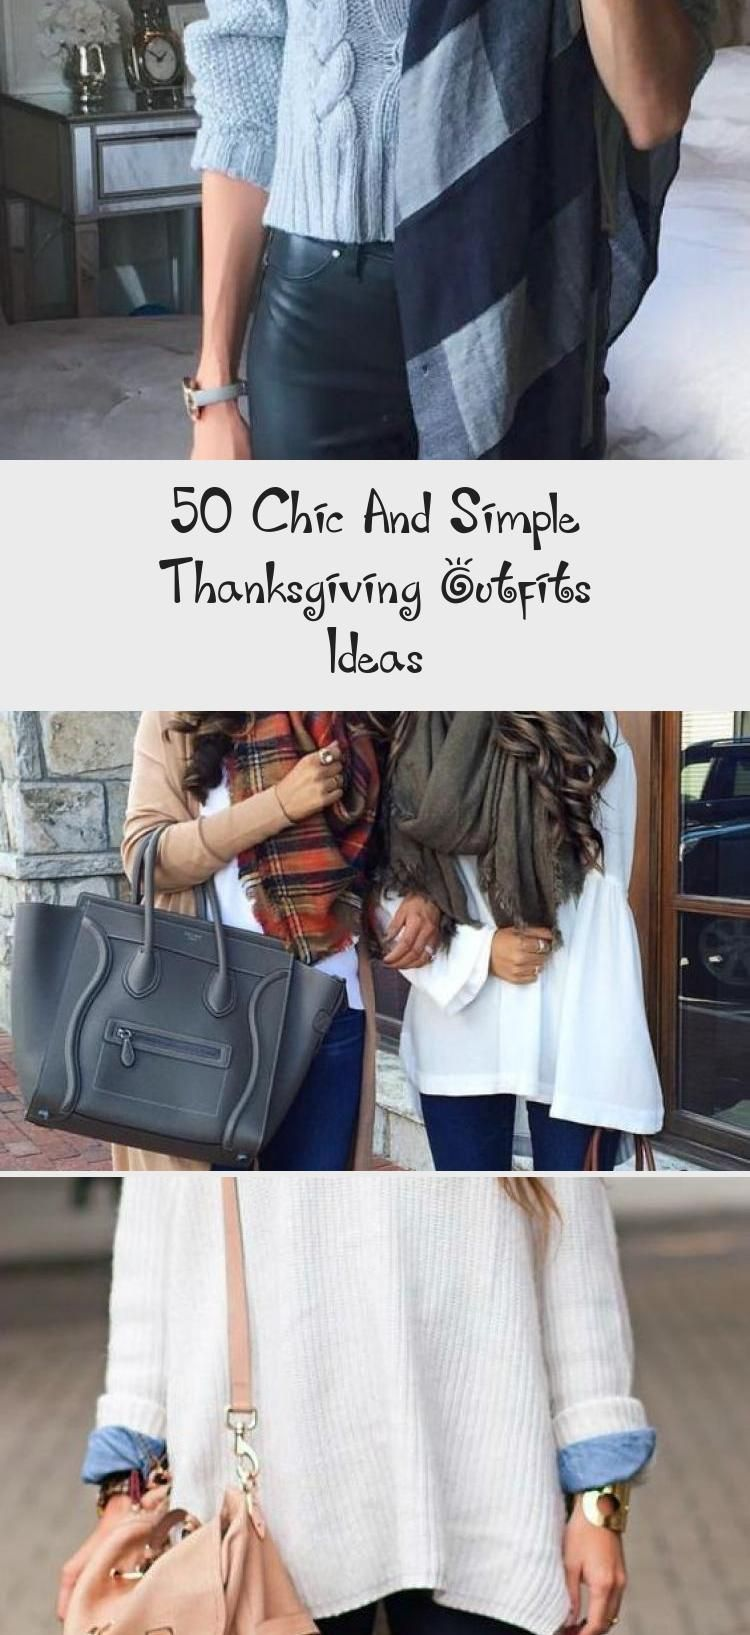 50 Chic And Simple Thanksgiving Outfits Ideas - Fashion #thanksgivingoutfit